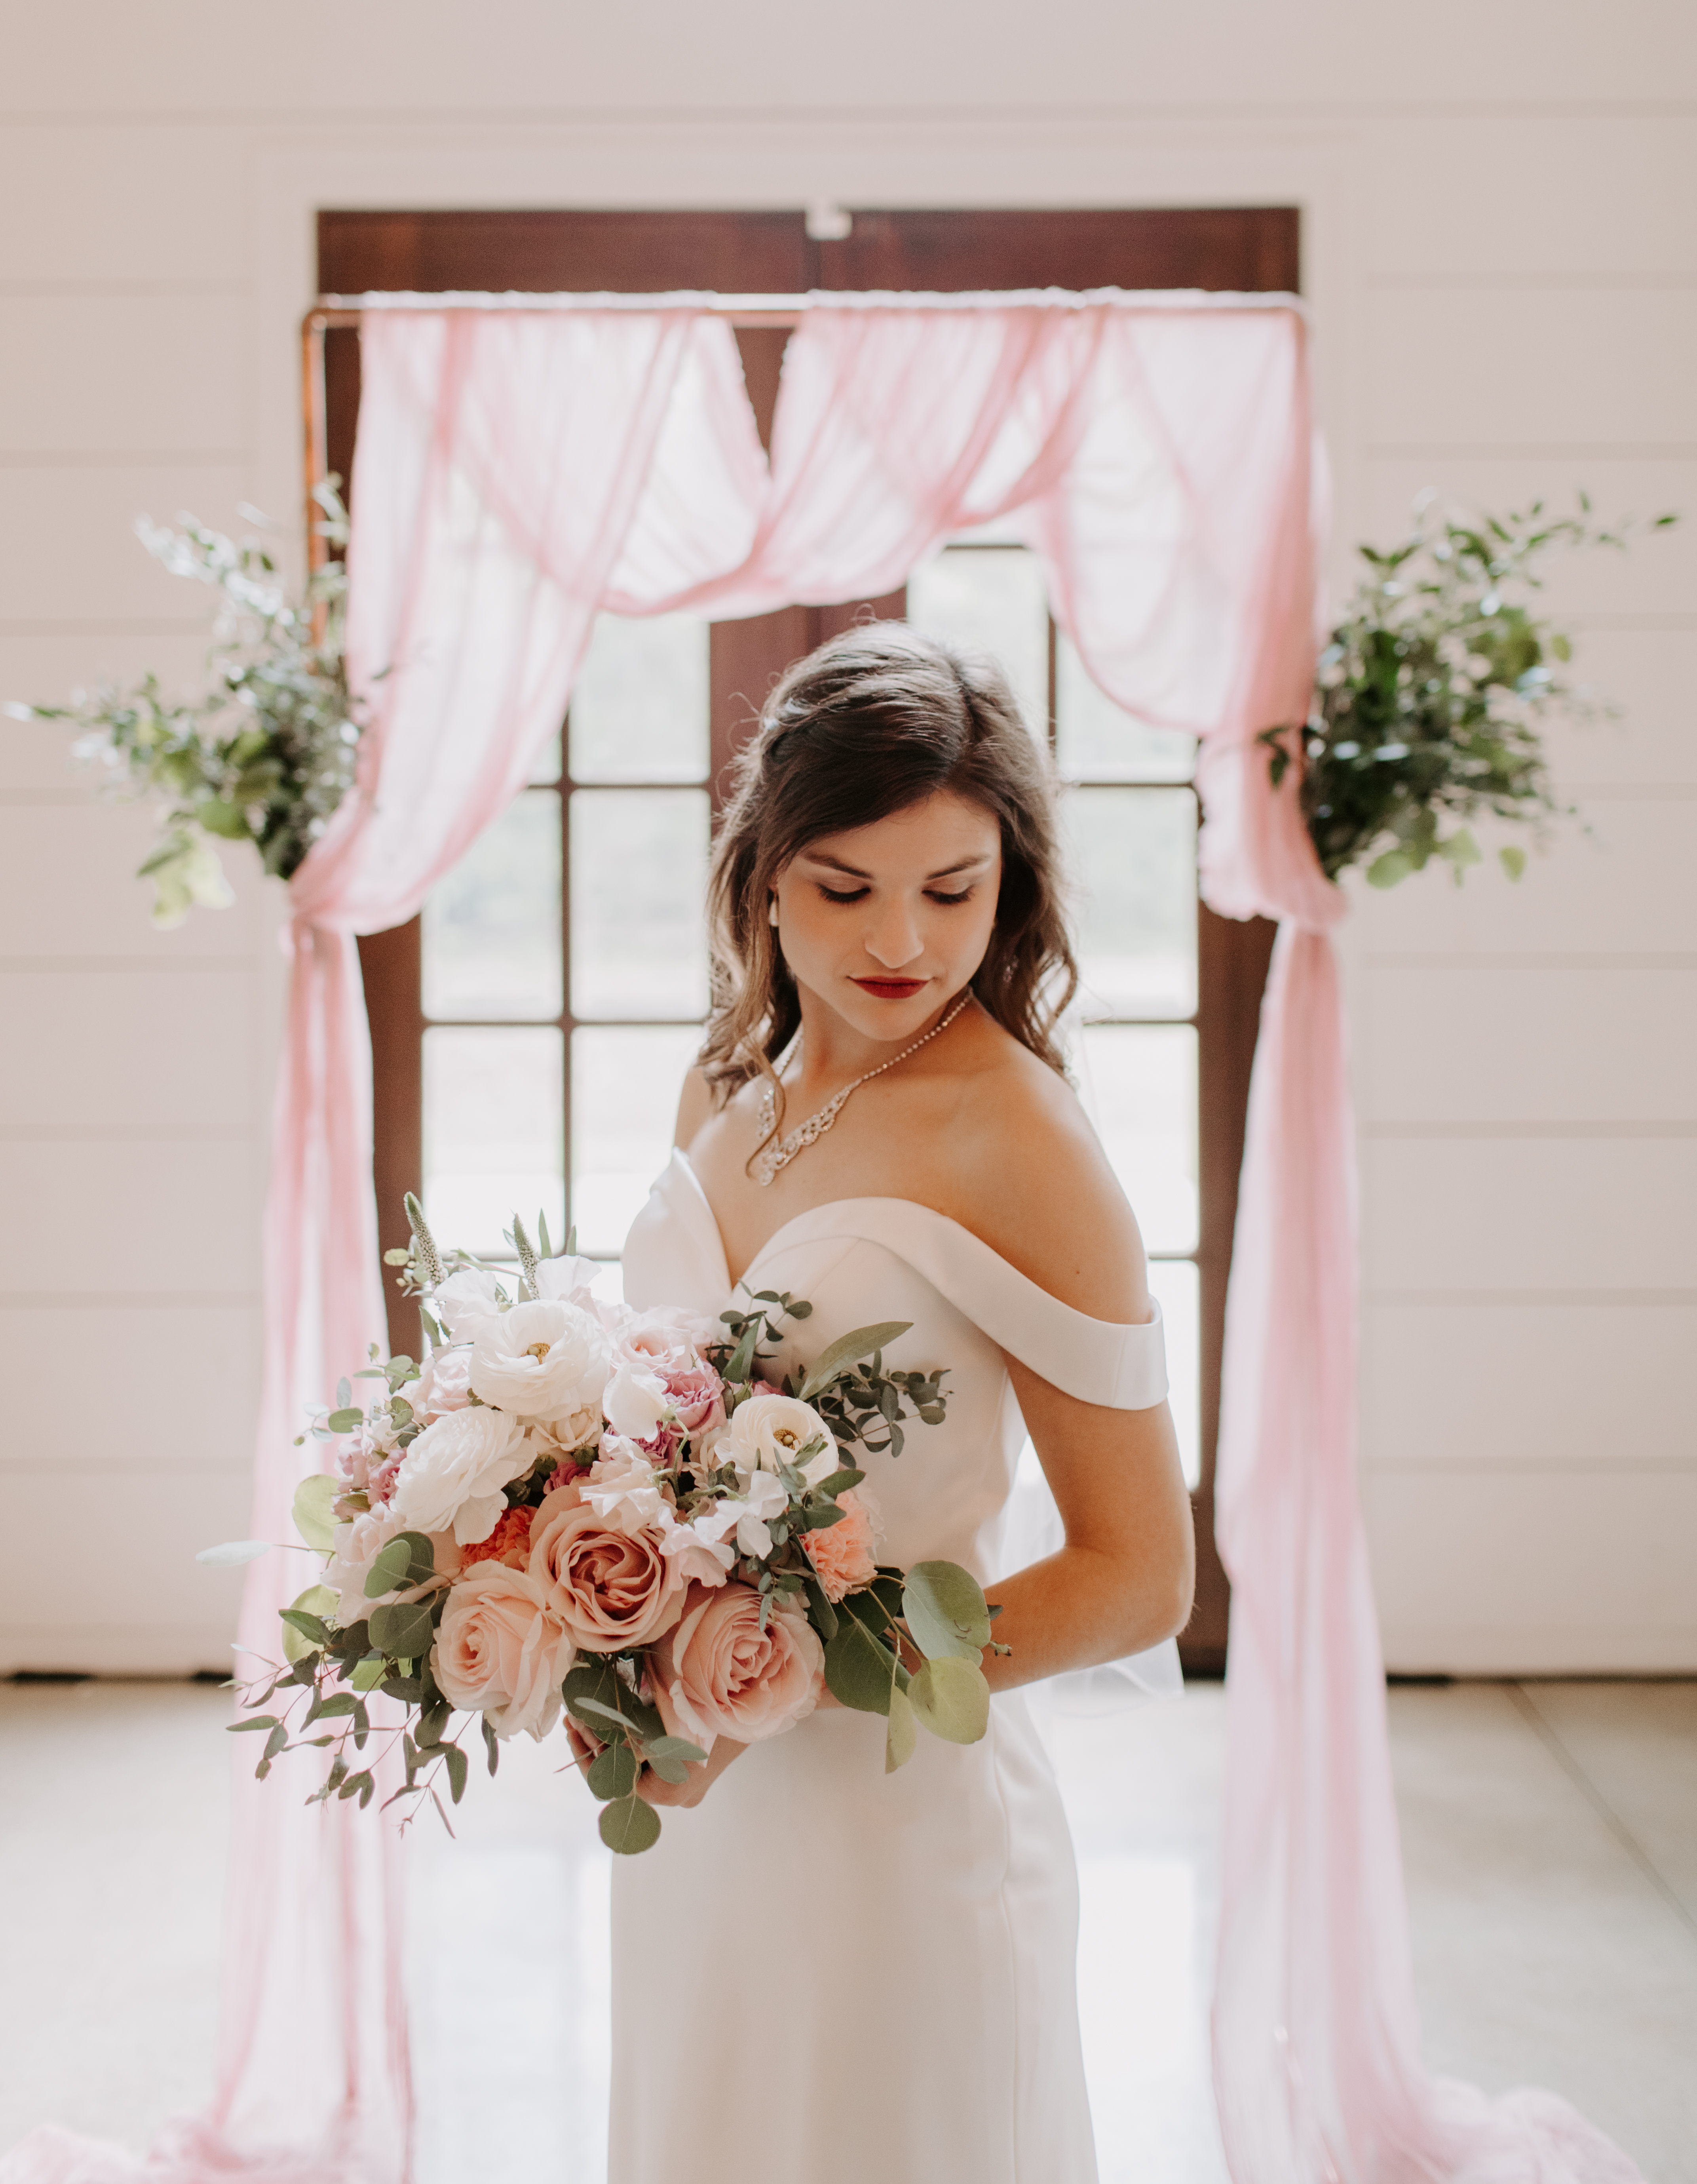 Bridal portrait in front of copper arch with pink cheesecloth and greenery